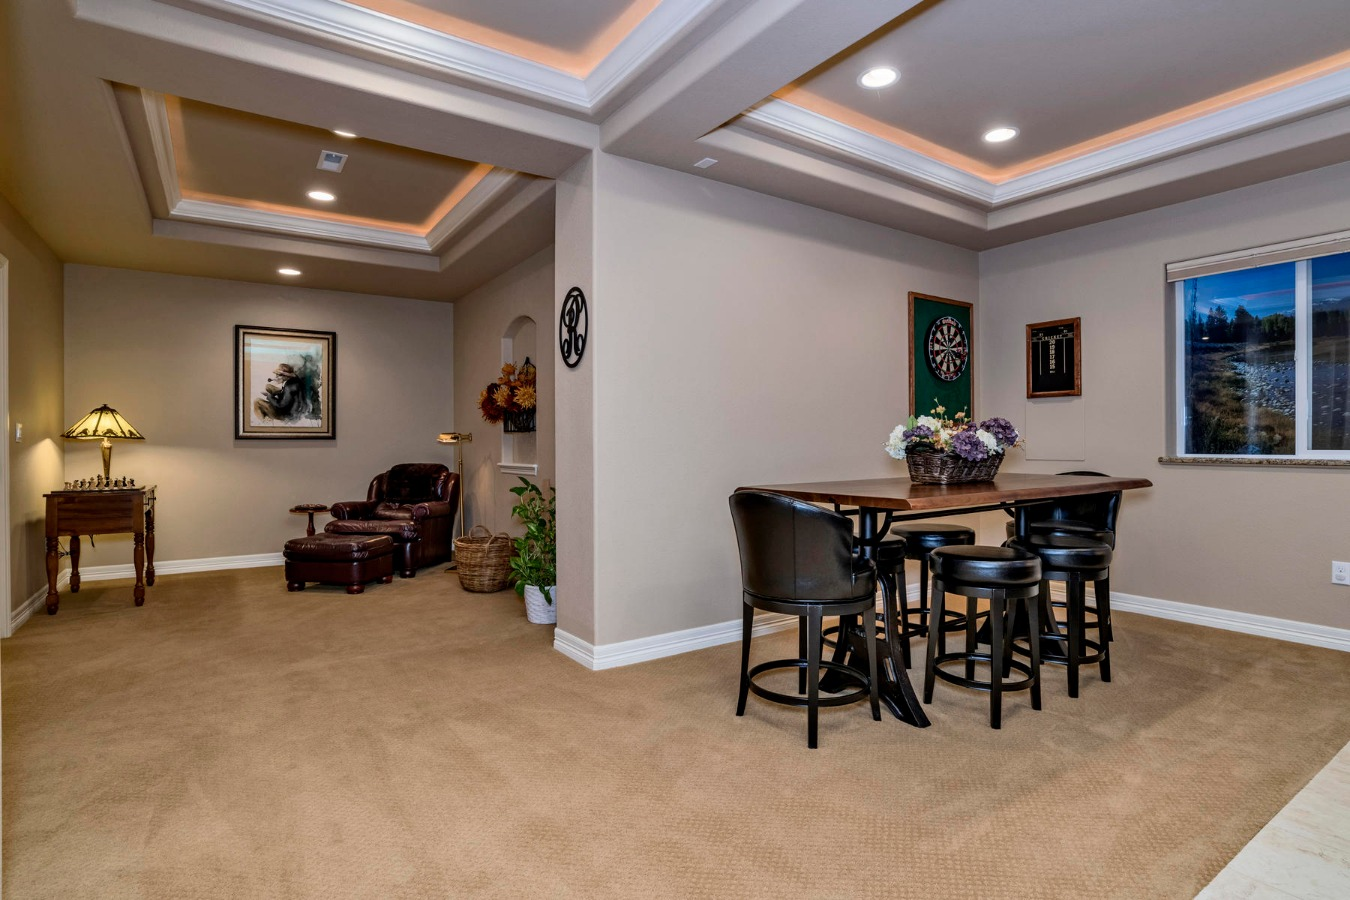 Great Game Table and Retreat Spaces in Basement